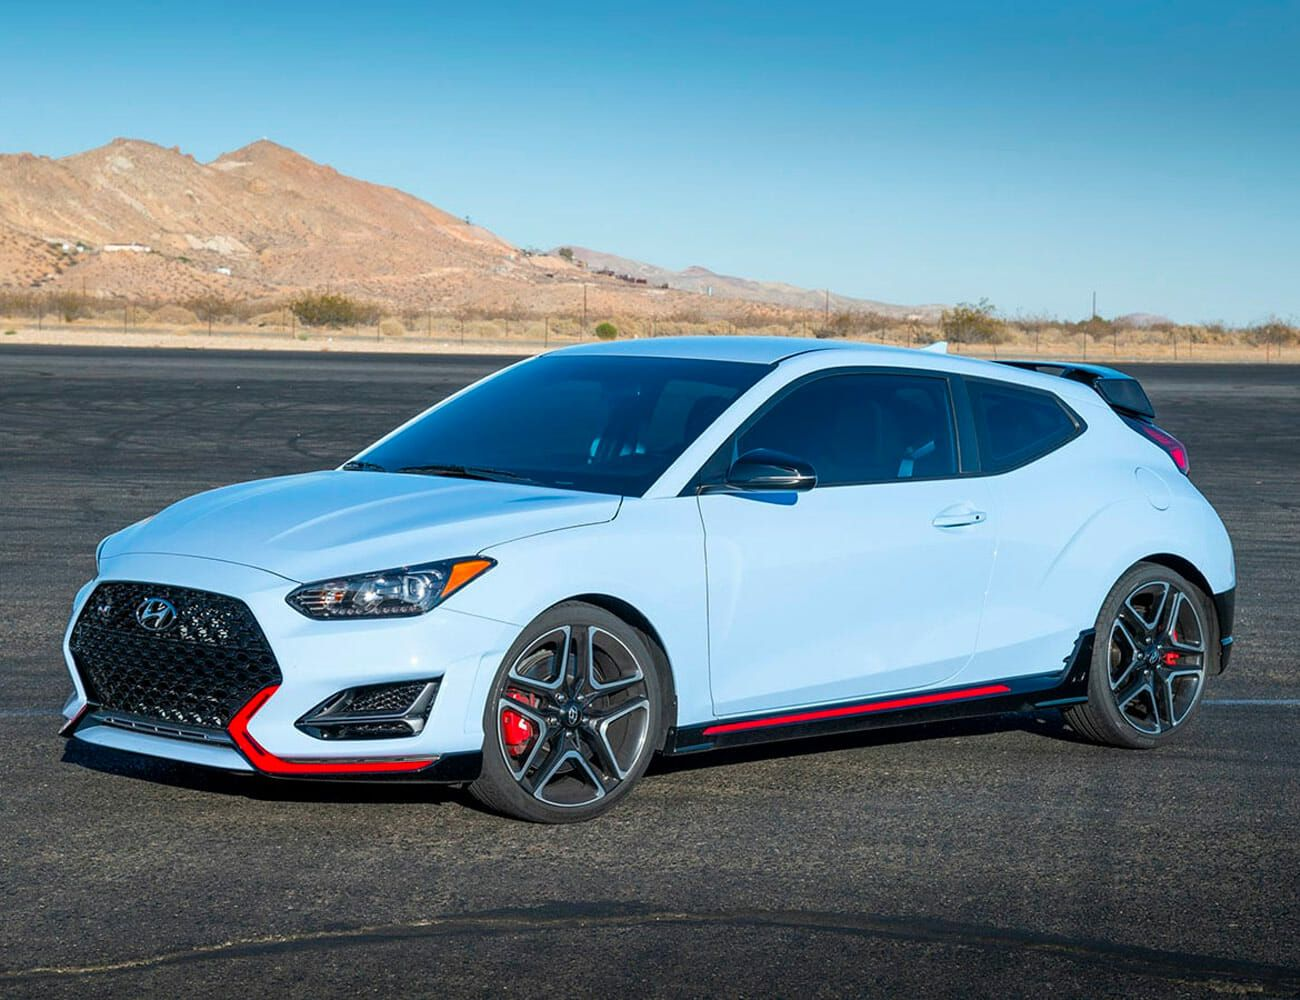 The Best Cars To Buy In 2019 New Cars Stuff To Buy Cool Trucks